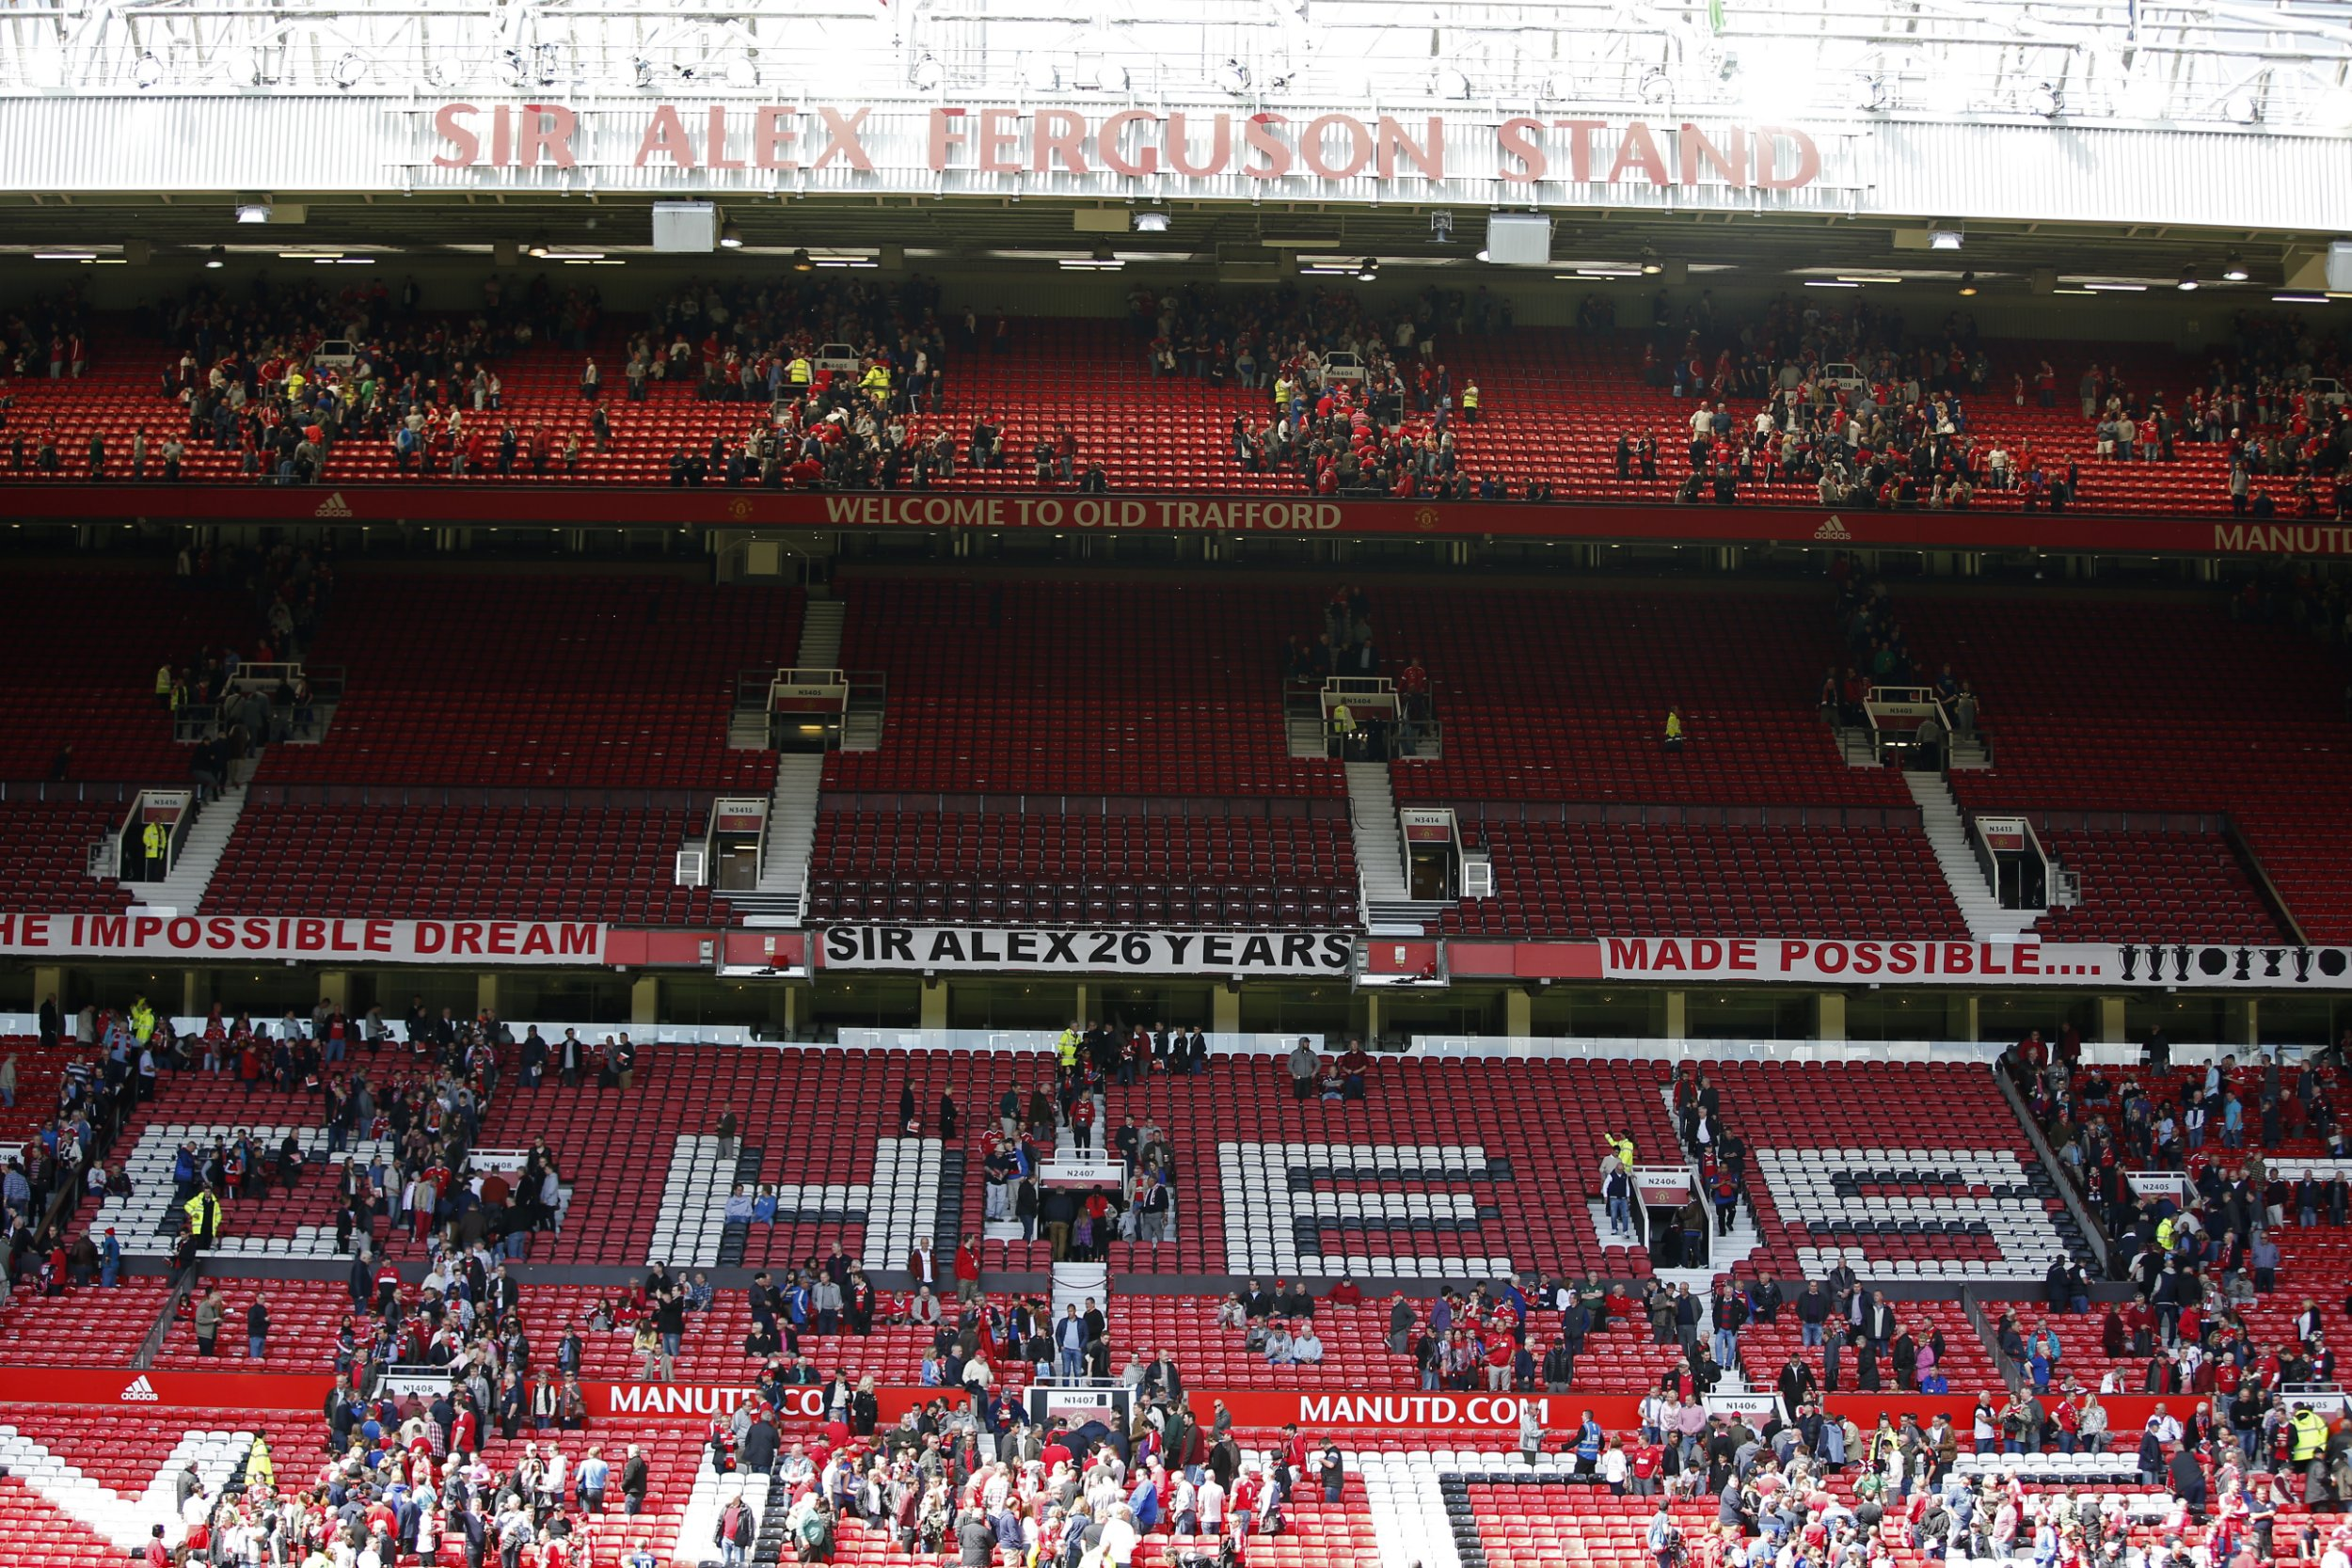 Old Trafford security scare was a hoax, confirms Greater Manchester Police